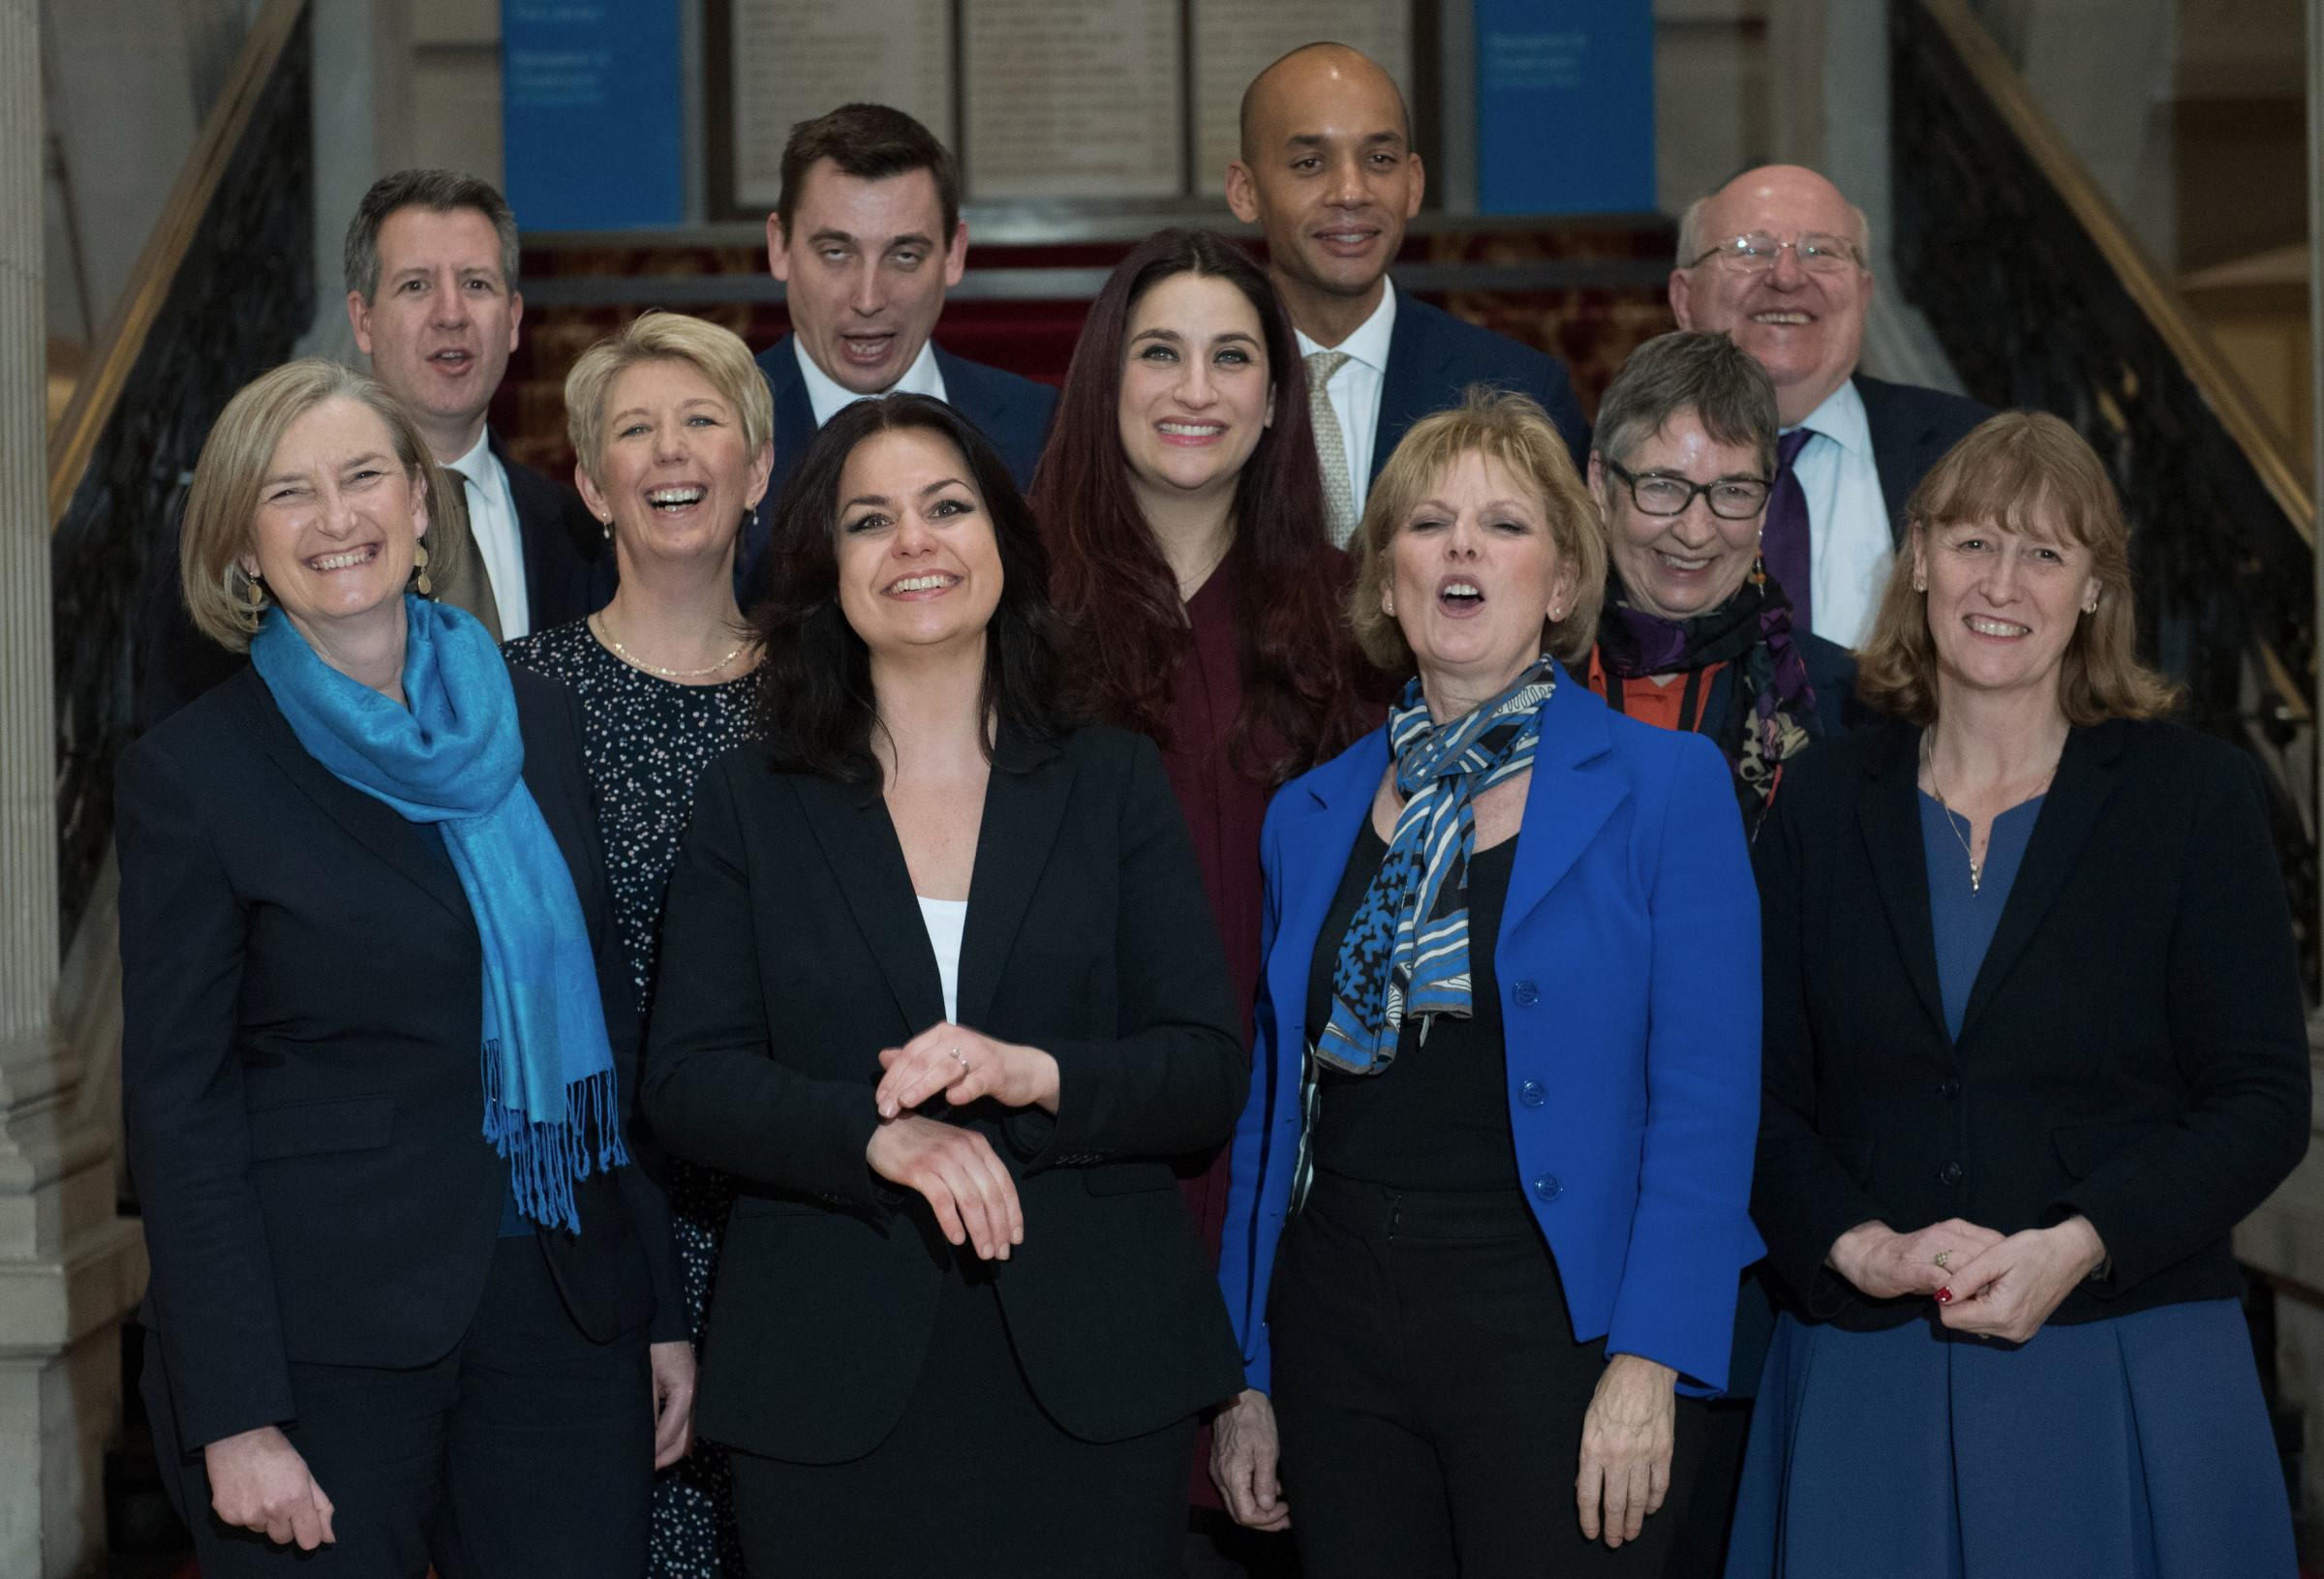 DEFECTORS: Chris Leslie, Gavin Shuker, Chuka Umunna and Mike Gapes, (middle row, left to right) Angela Smith, Luciana Berger and Ann Coffey, (front row, left to right) Sarah Wollaston, Heidi Allen, Anna Soubry and Joan Ryan